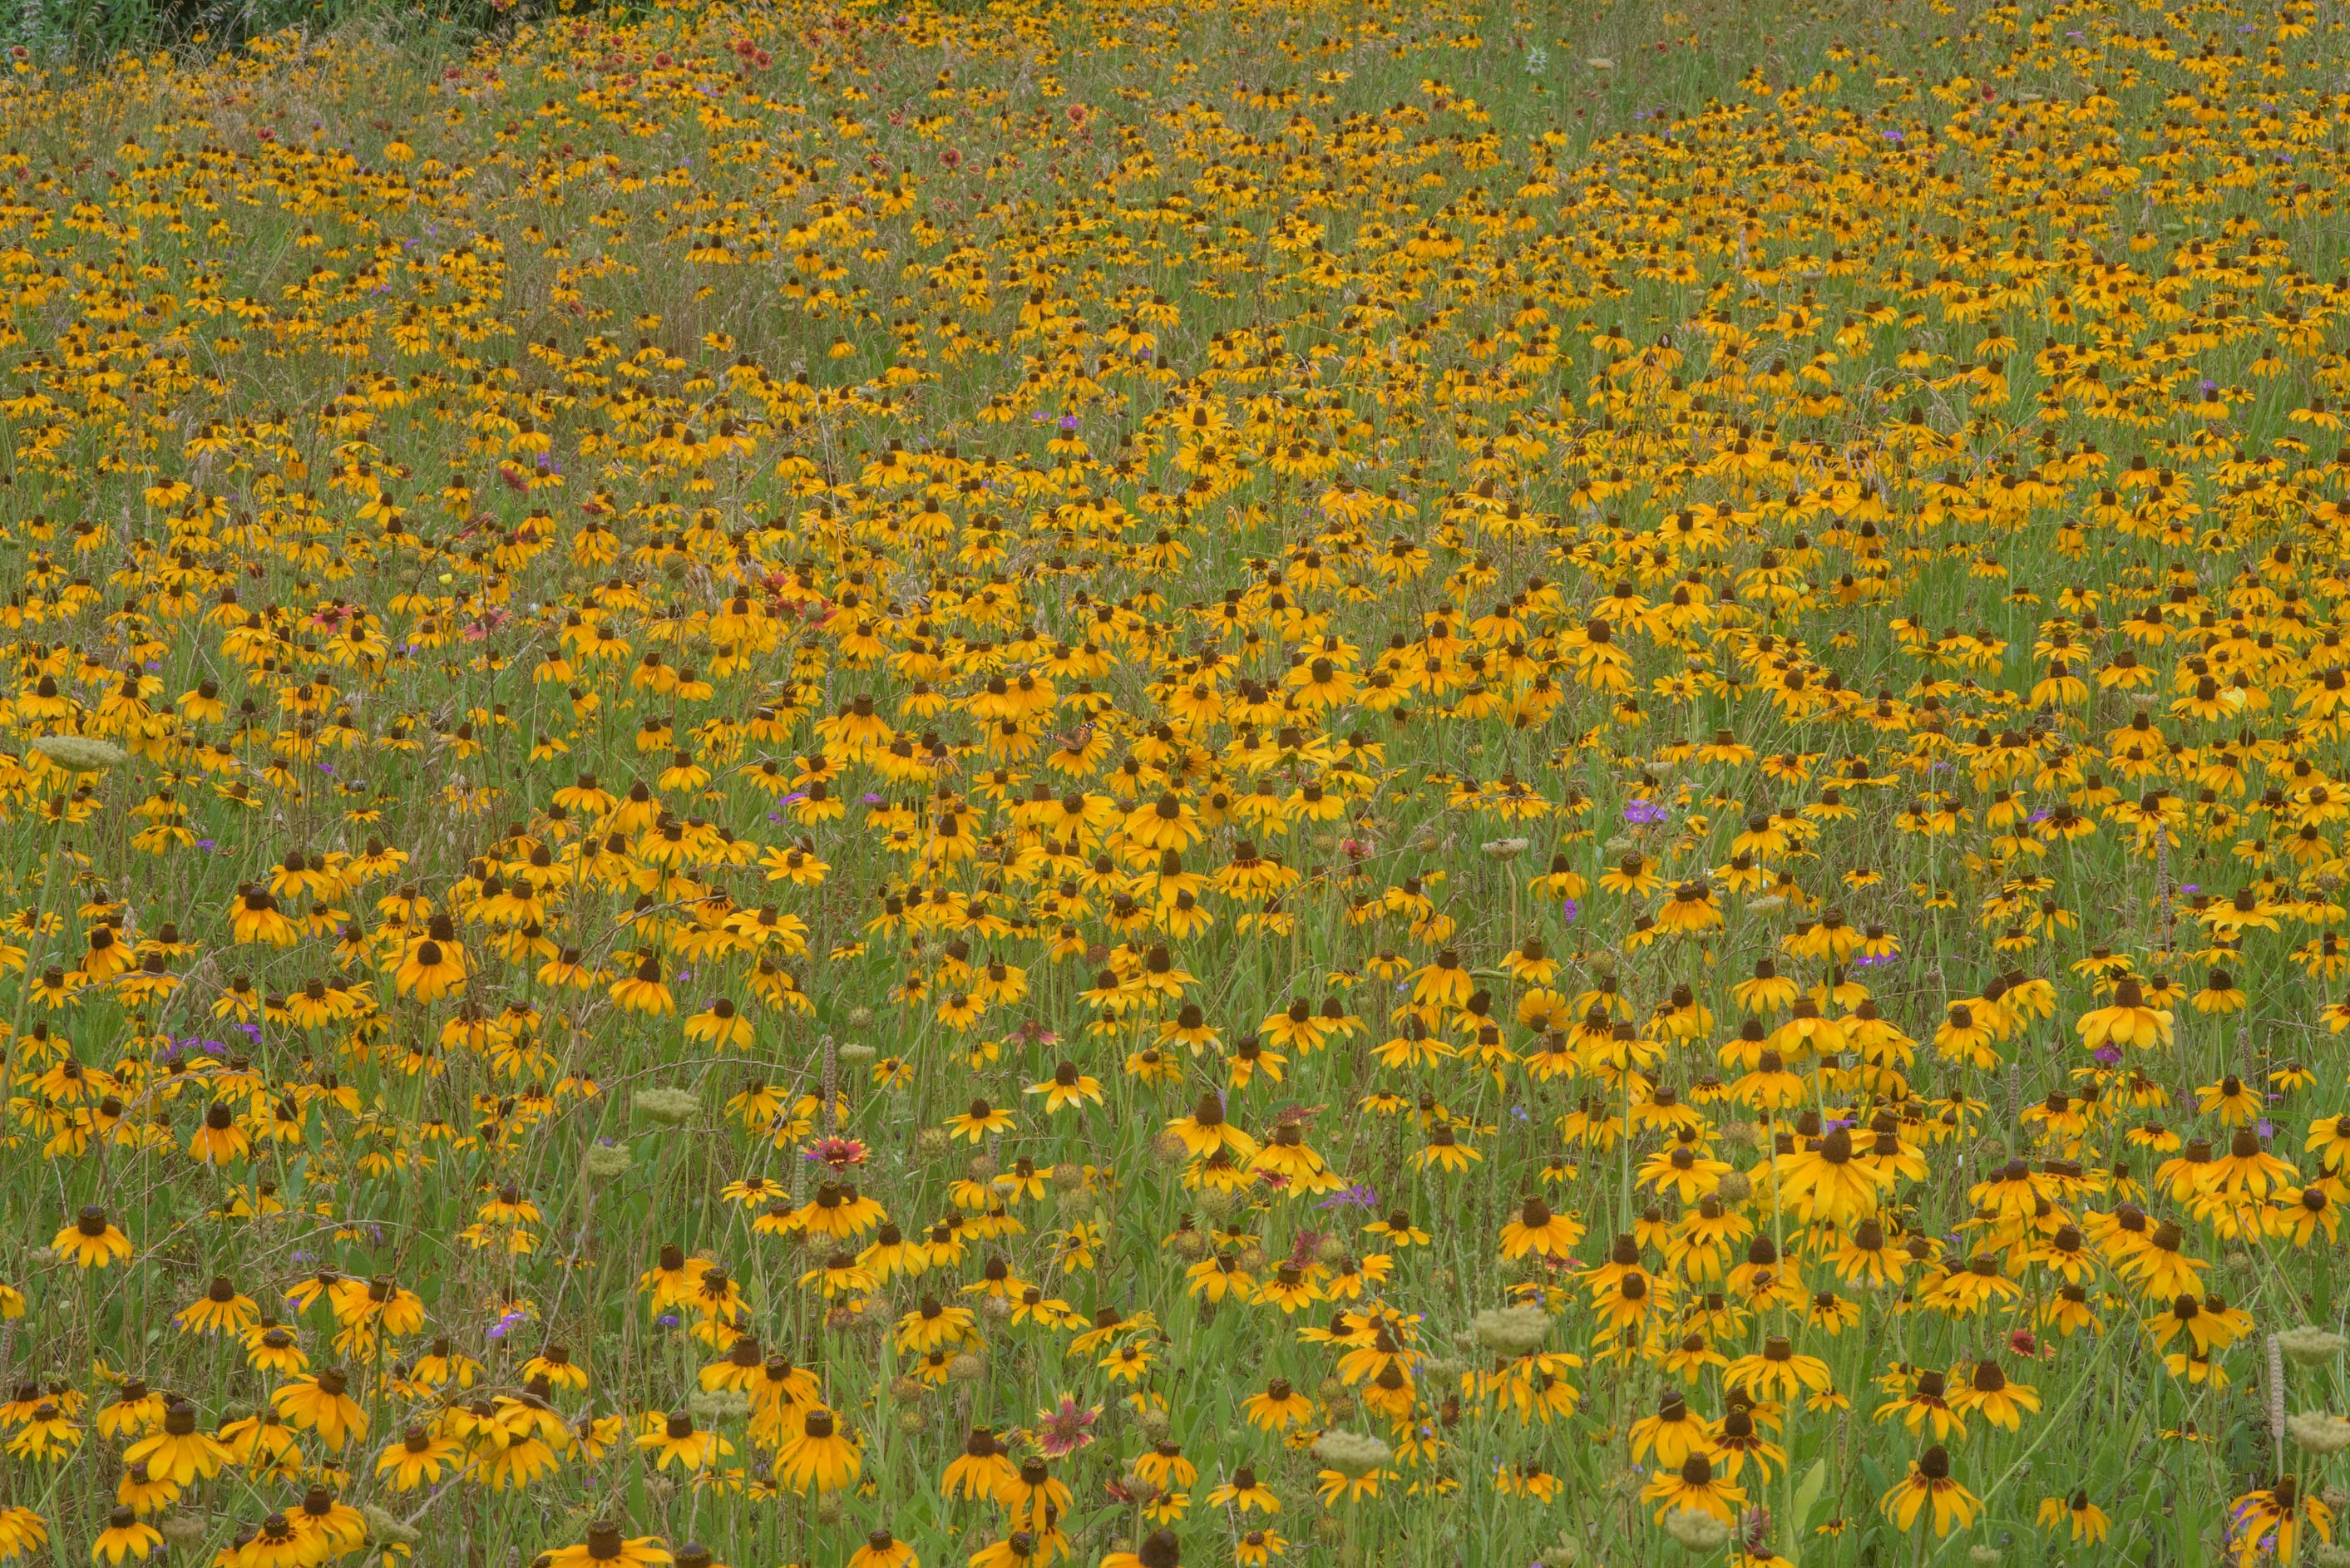 Flowers of black eyed susan (Rudbeckia hirta) in...State Historic Site. Washington, Texas